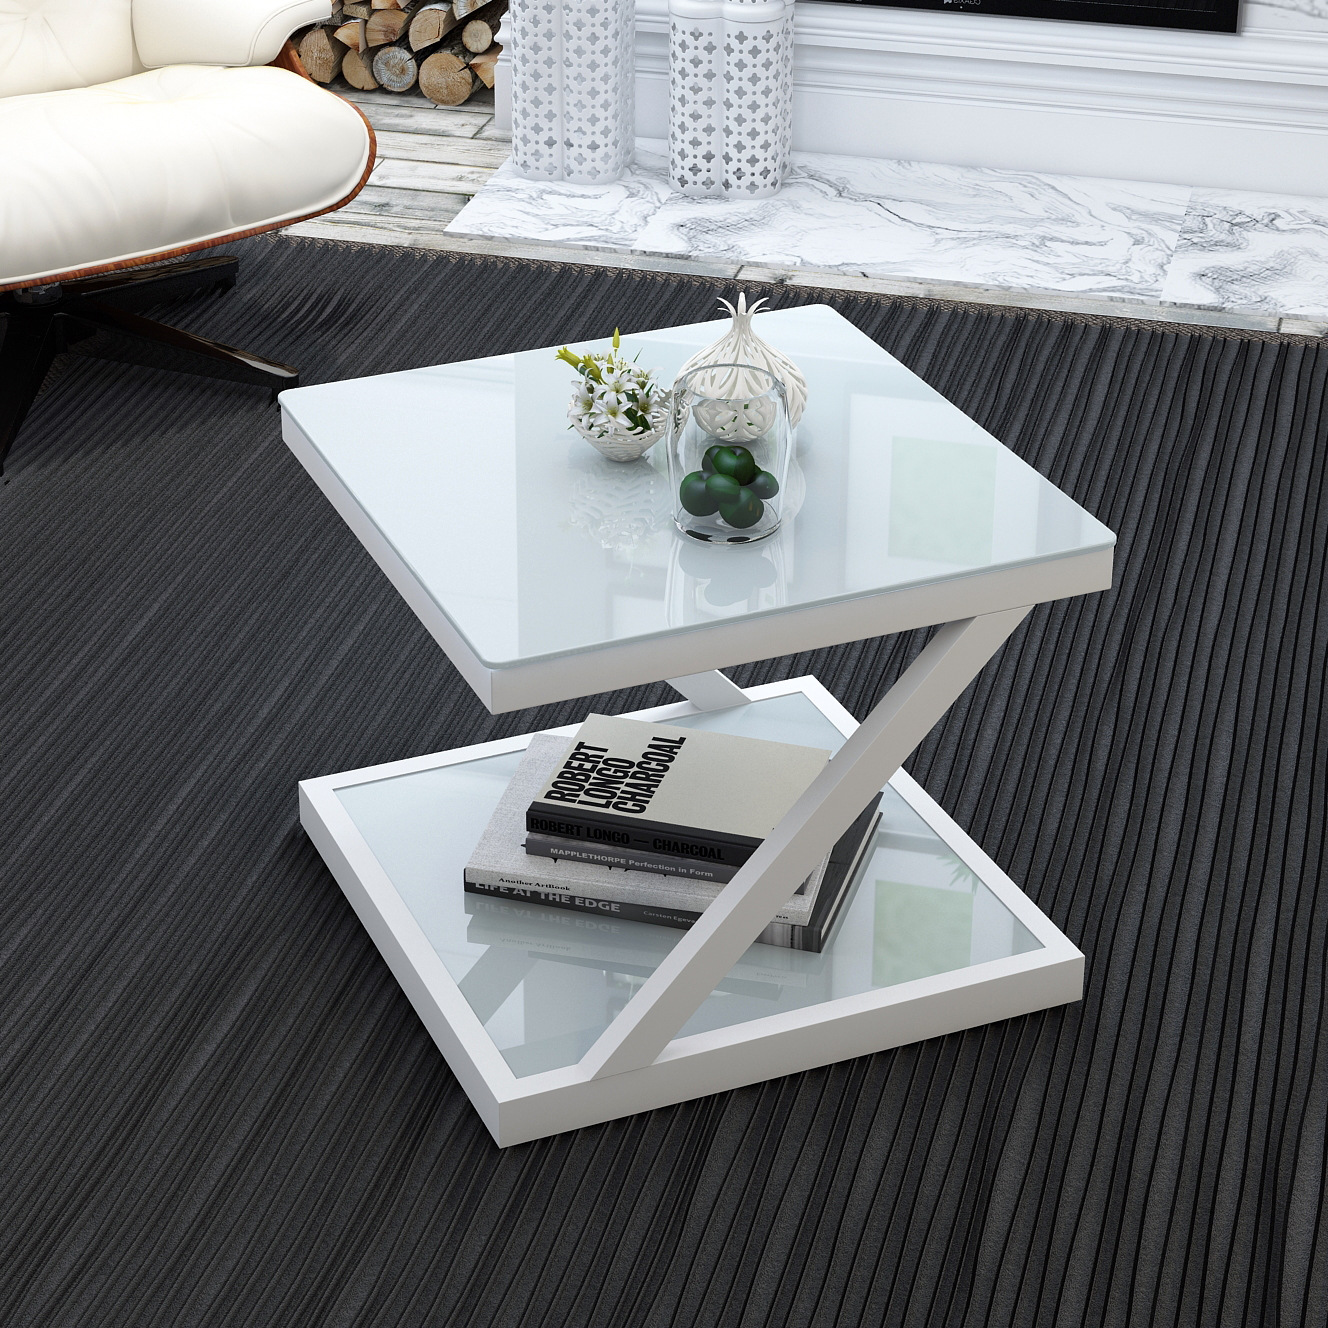 US $186.76 21% OFF|simple and modern side table stalinite Small tea table  square creativity tea table drawing room small table modern furniture-in ...